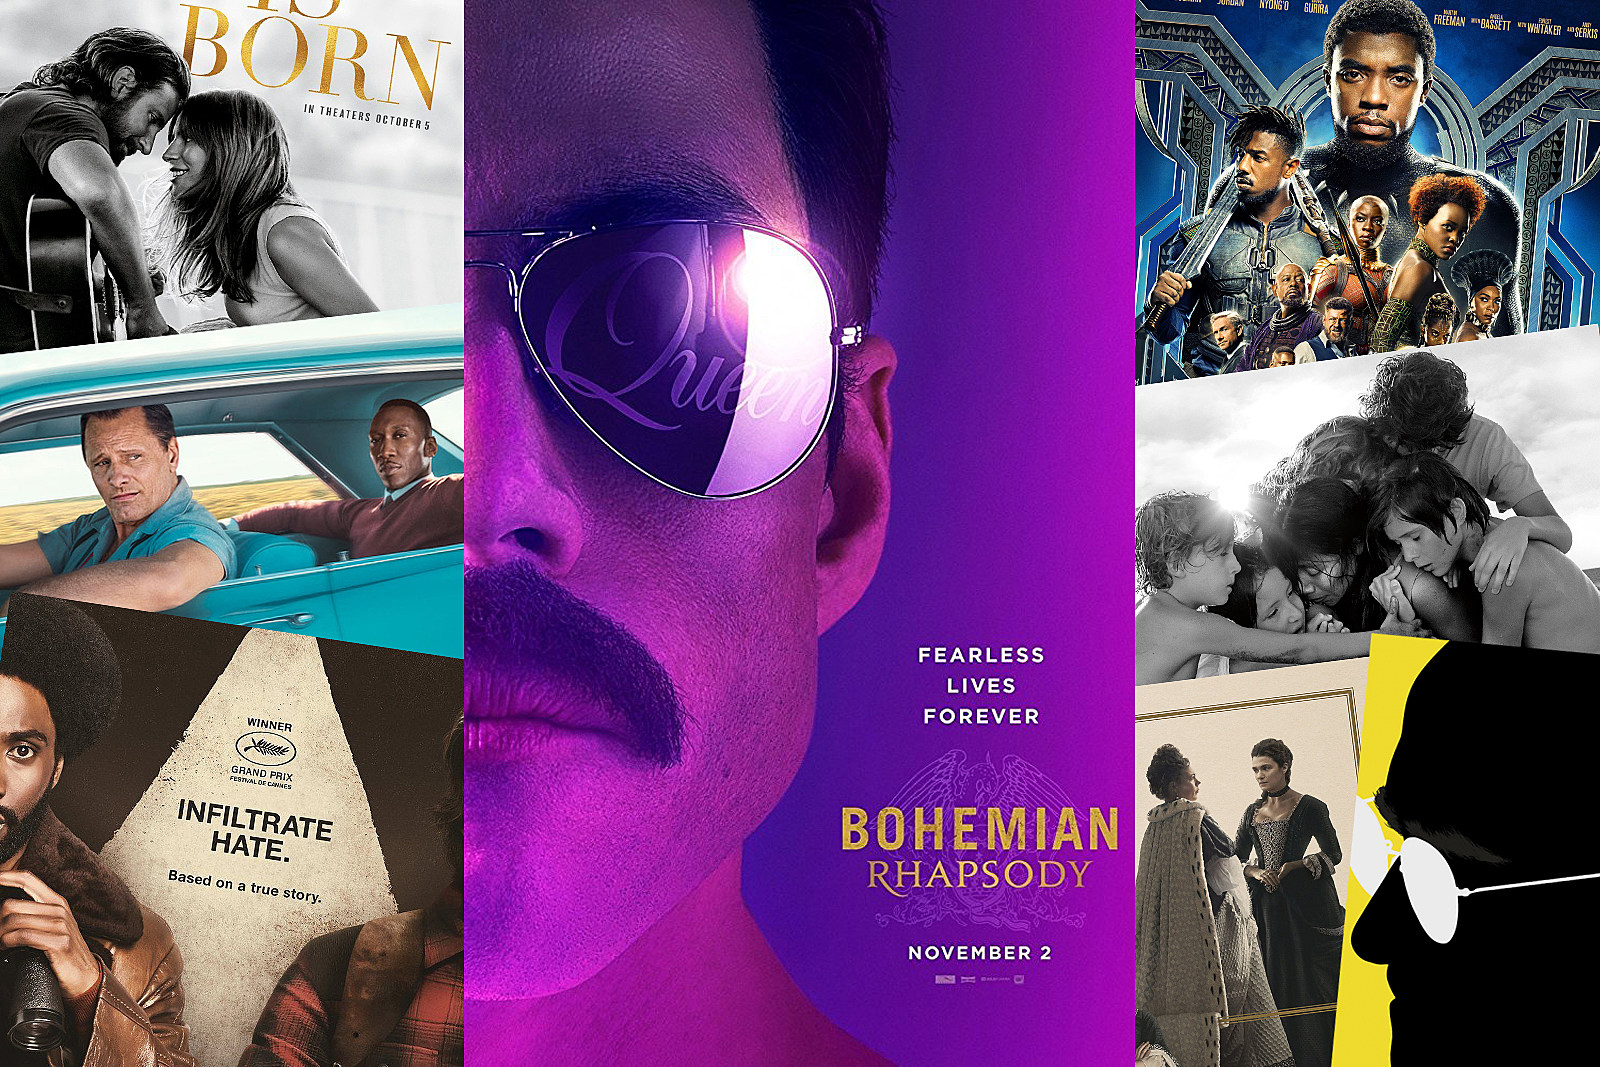 What Are the Odds 'Bohemian Rhapsody' Will Win Oscars?